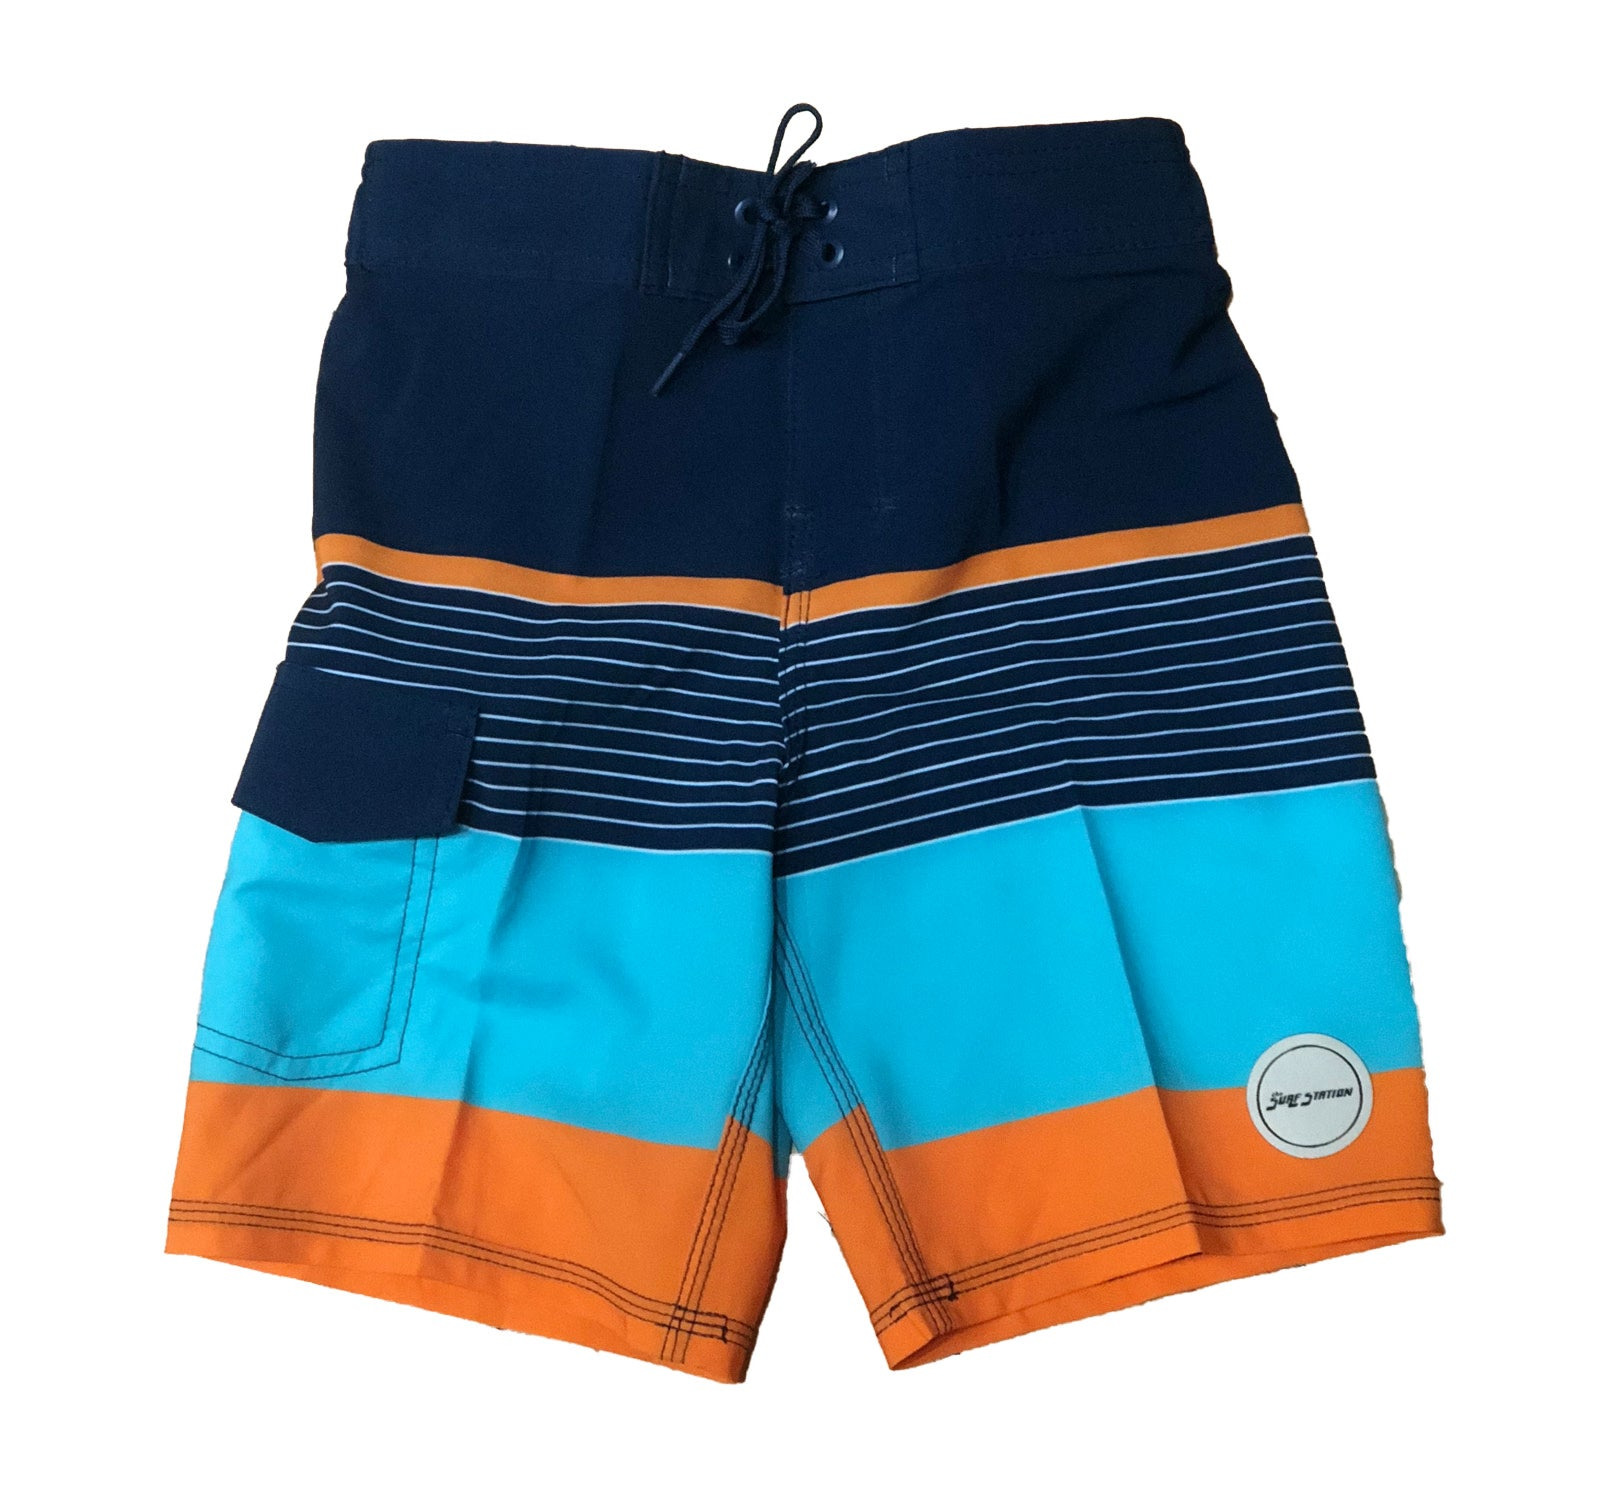 Surf Station Apex Toddler Boardshorts